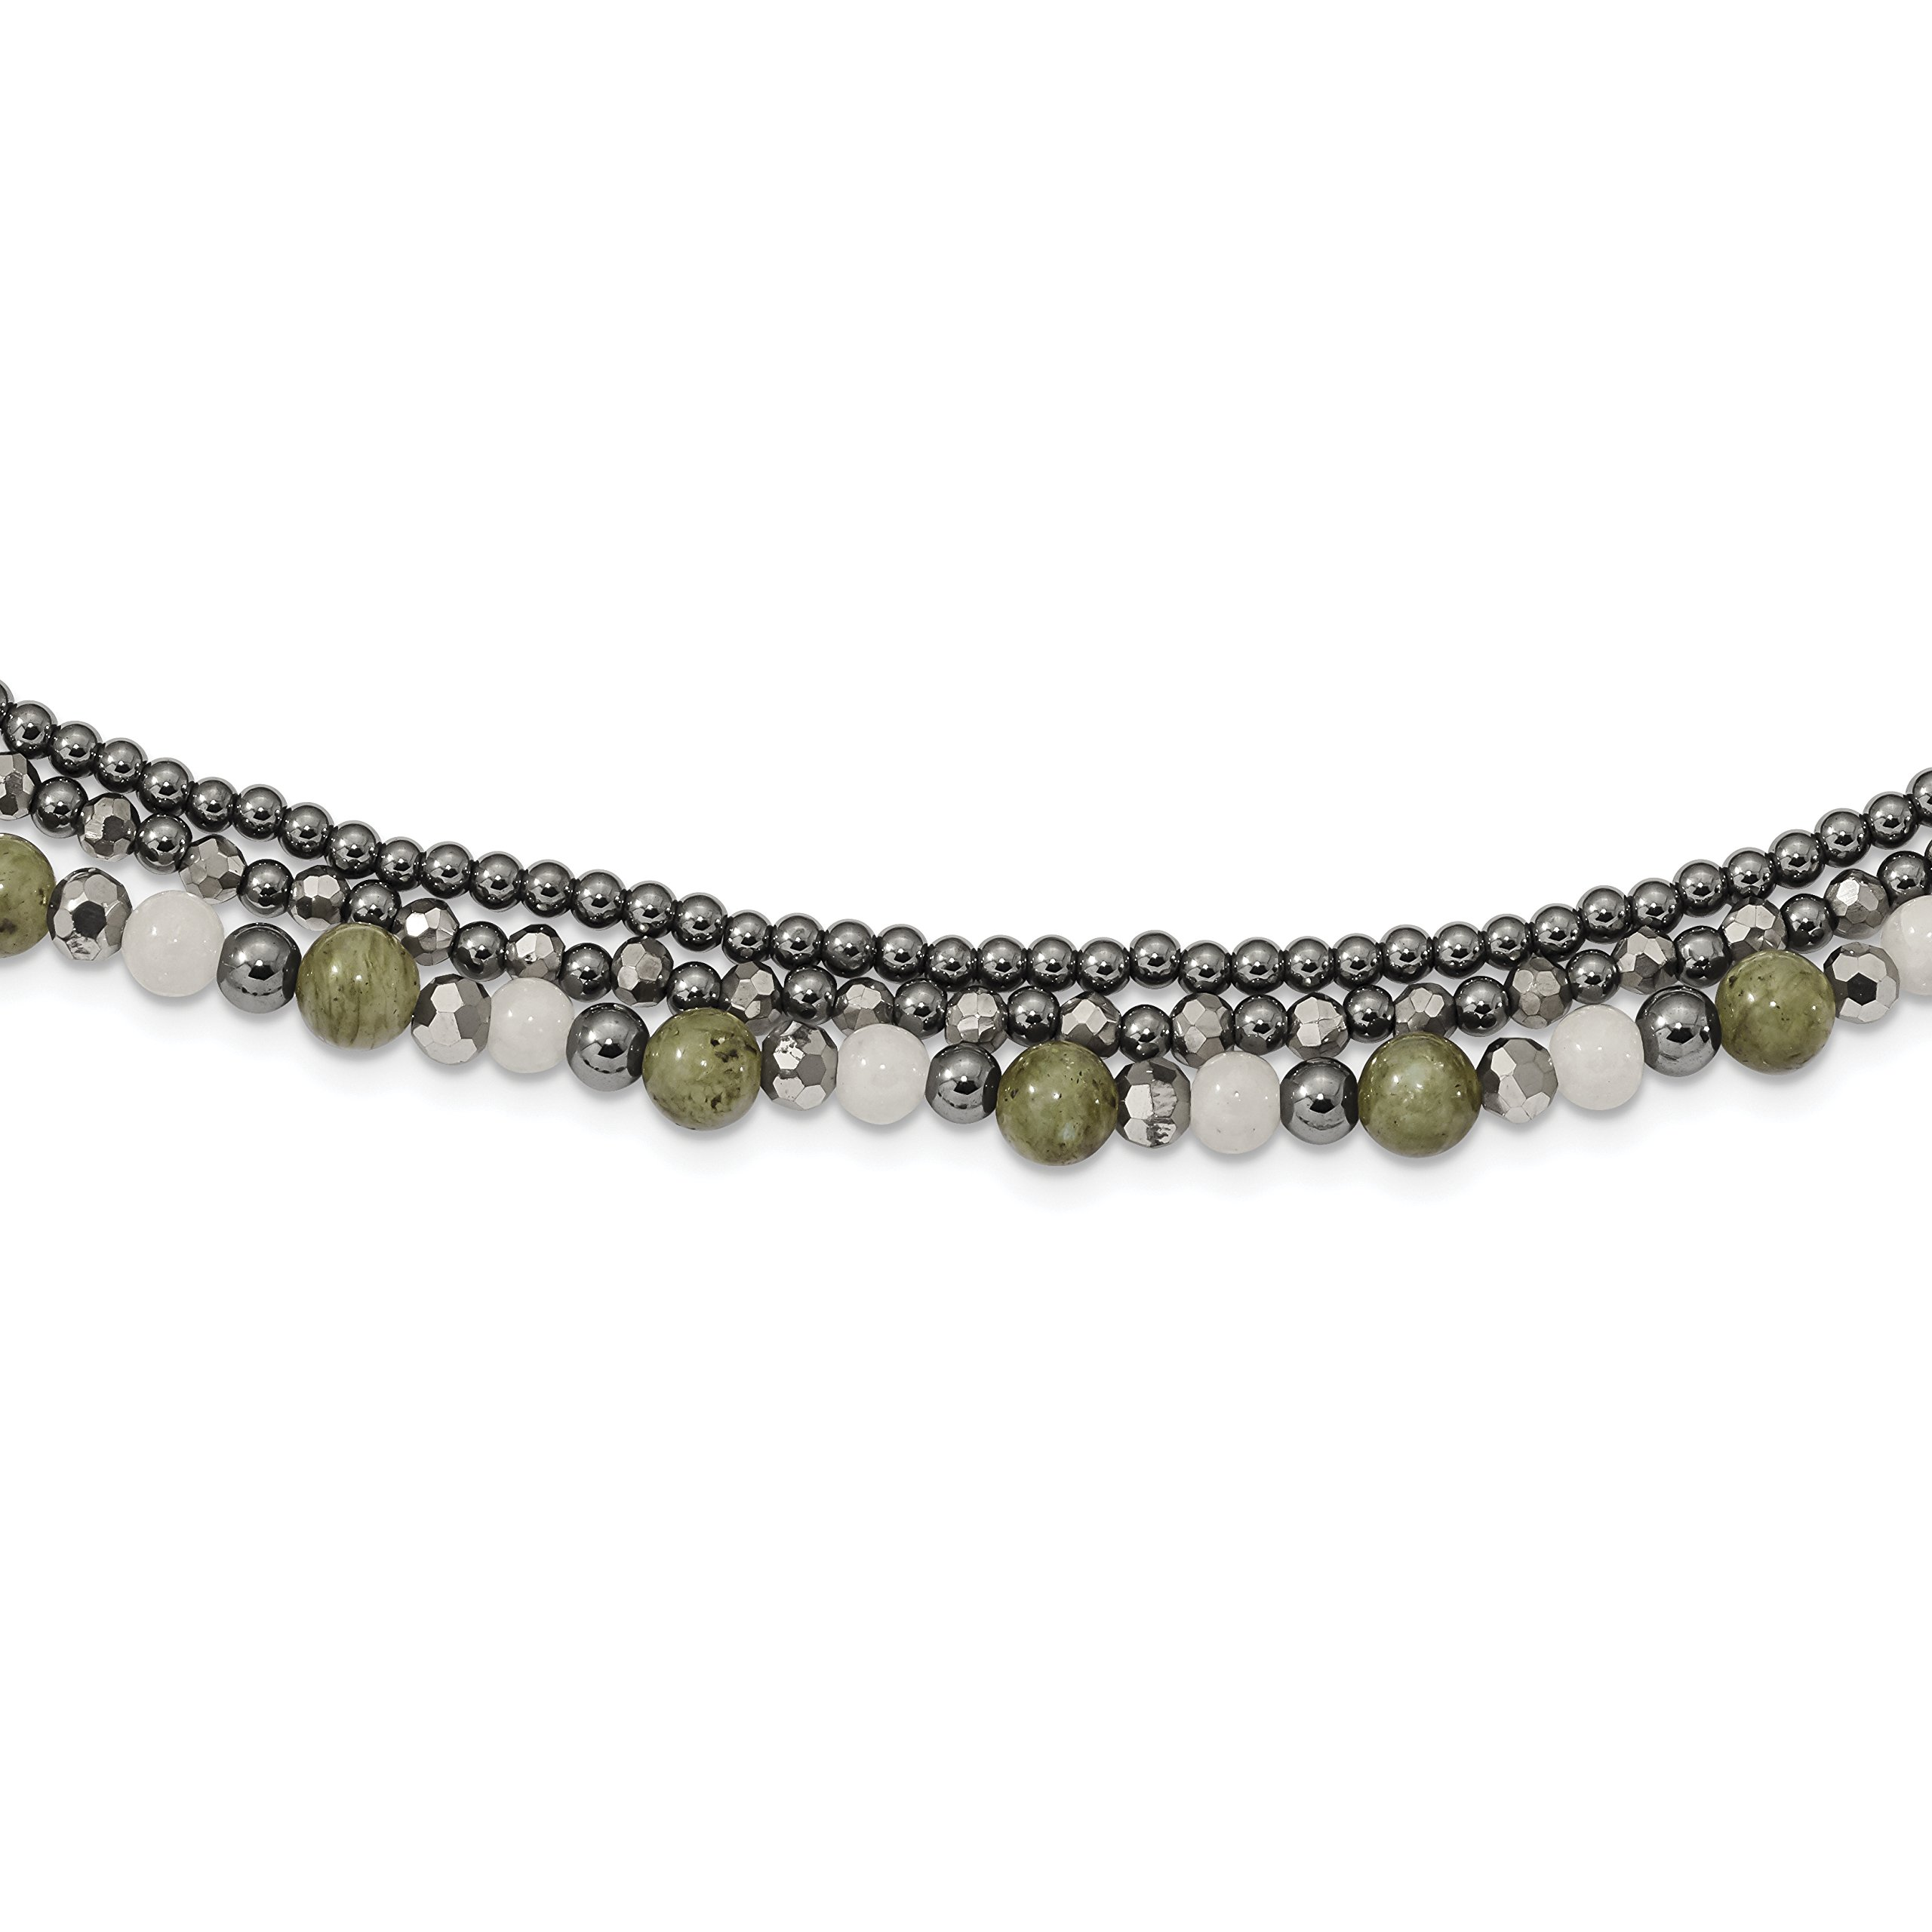 ICE CARATS 925 Sterling Silver Crystal/hematite/white Jade/labradorite 3 Strand 2 Inch Extension Chain Necklace Natural Stone Fine Jewelry Gift Set For Women Heart